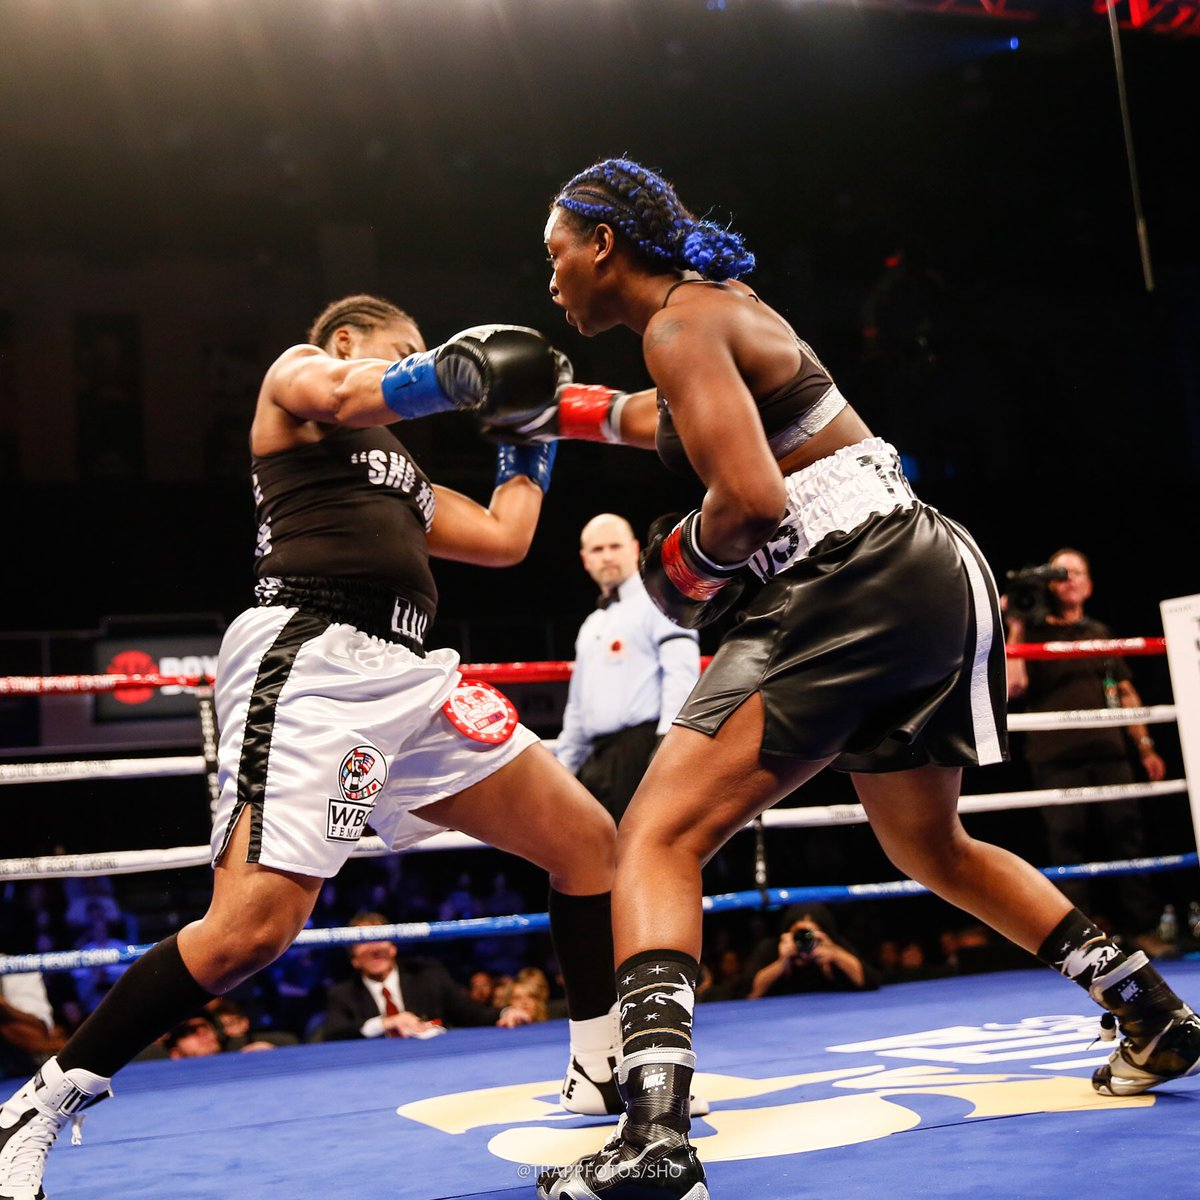 Claressa Shields (right) showed improving skills including solid body work against Tori Nelson. Photo: Stephanie Trapp, Showtime Boxing